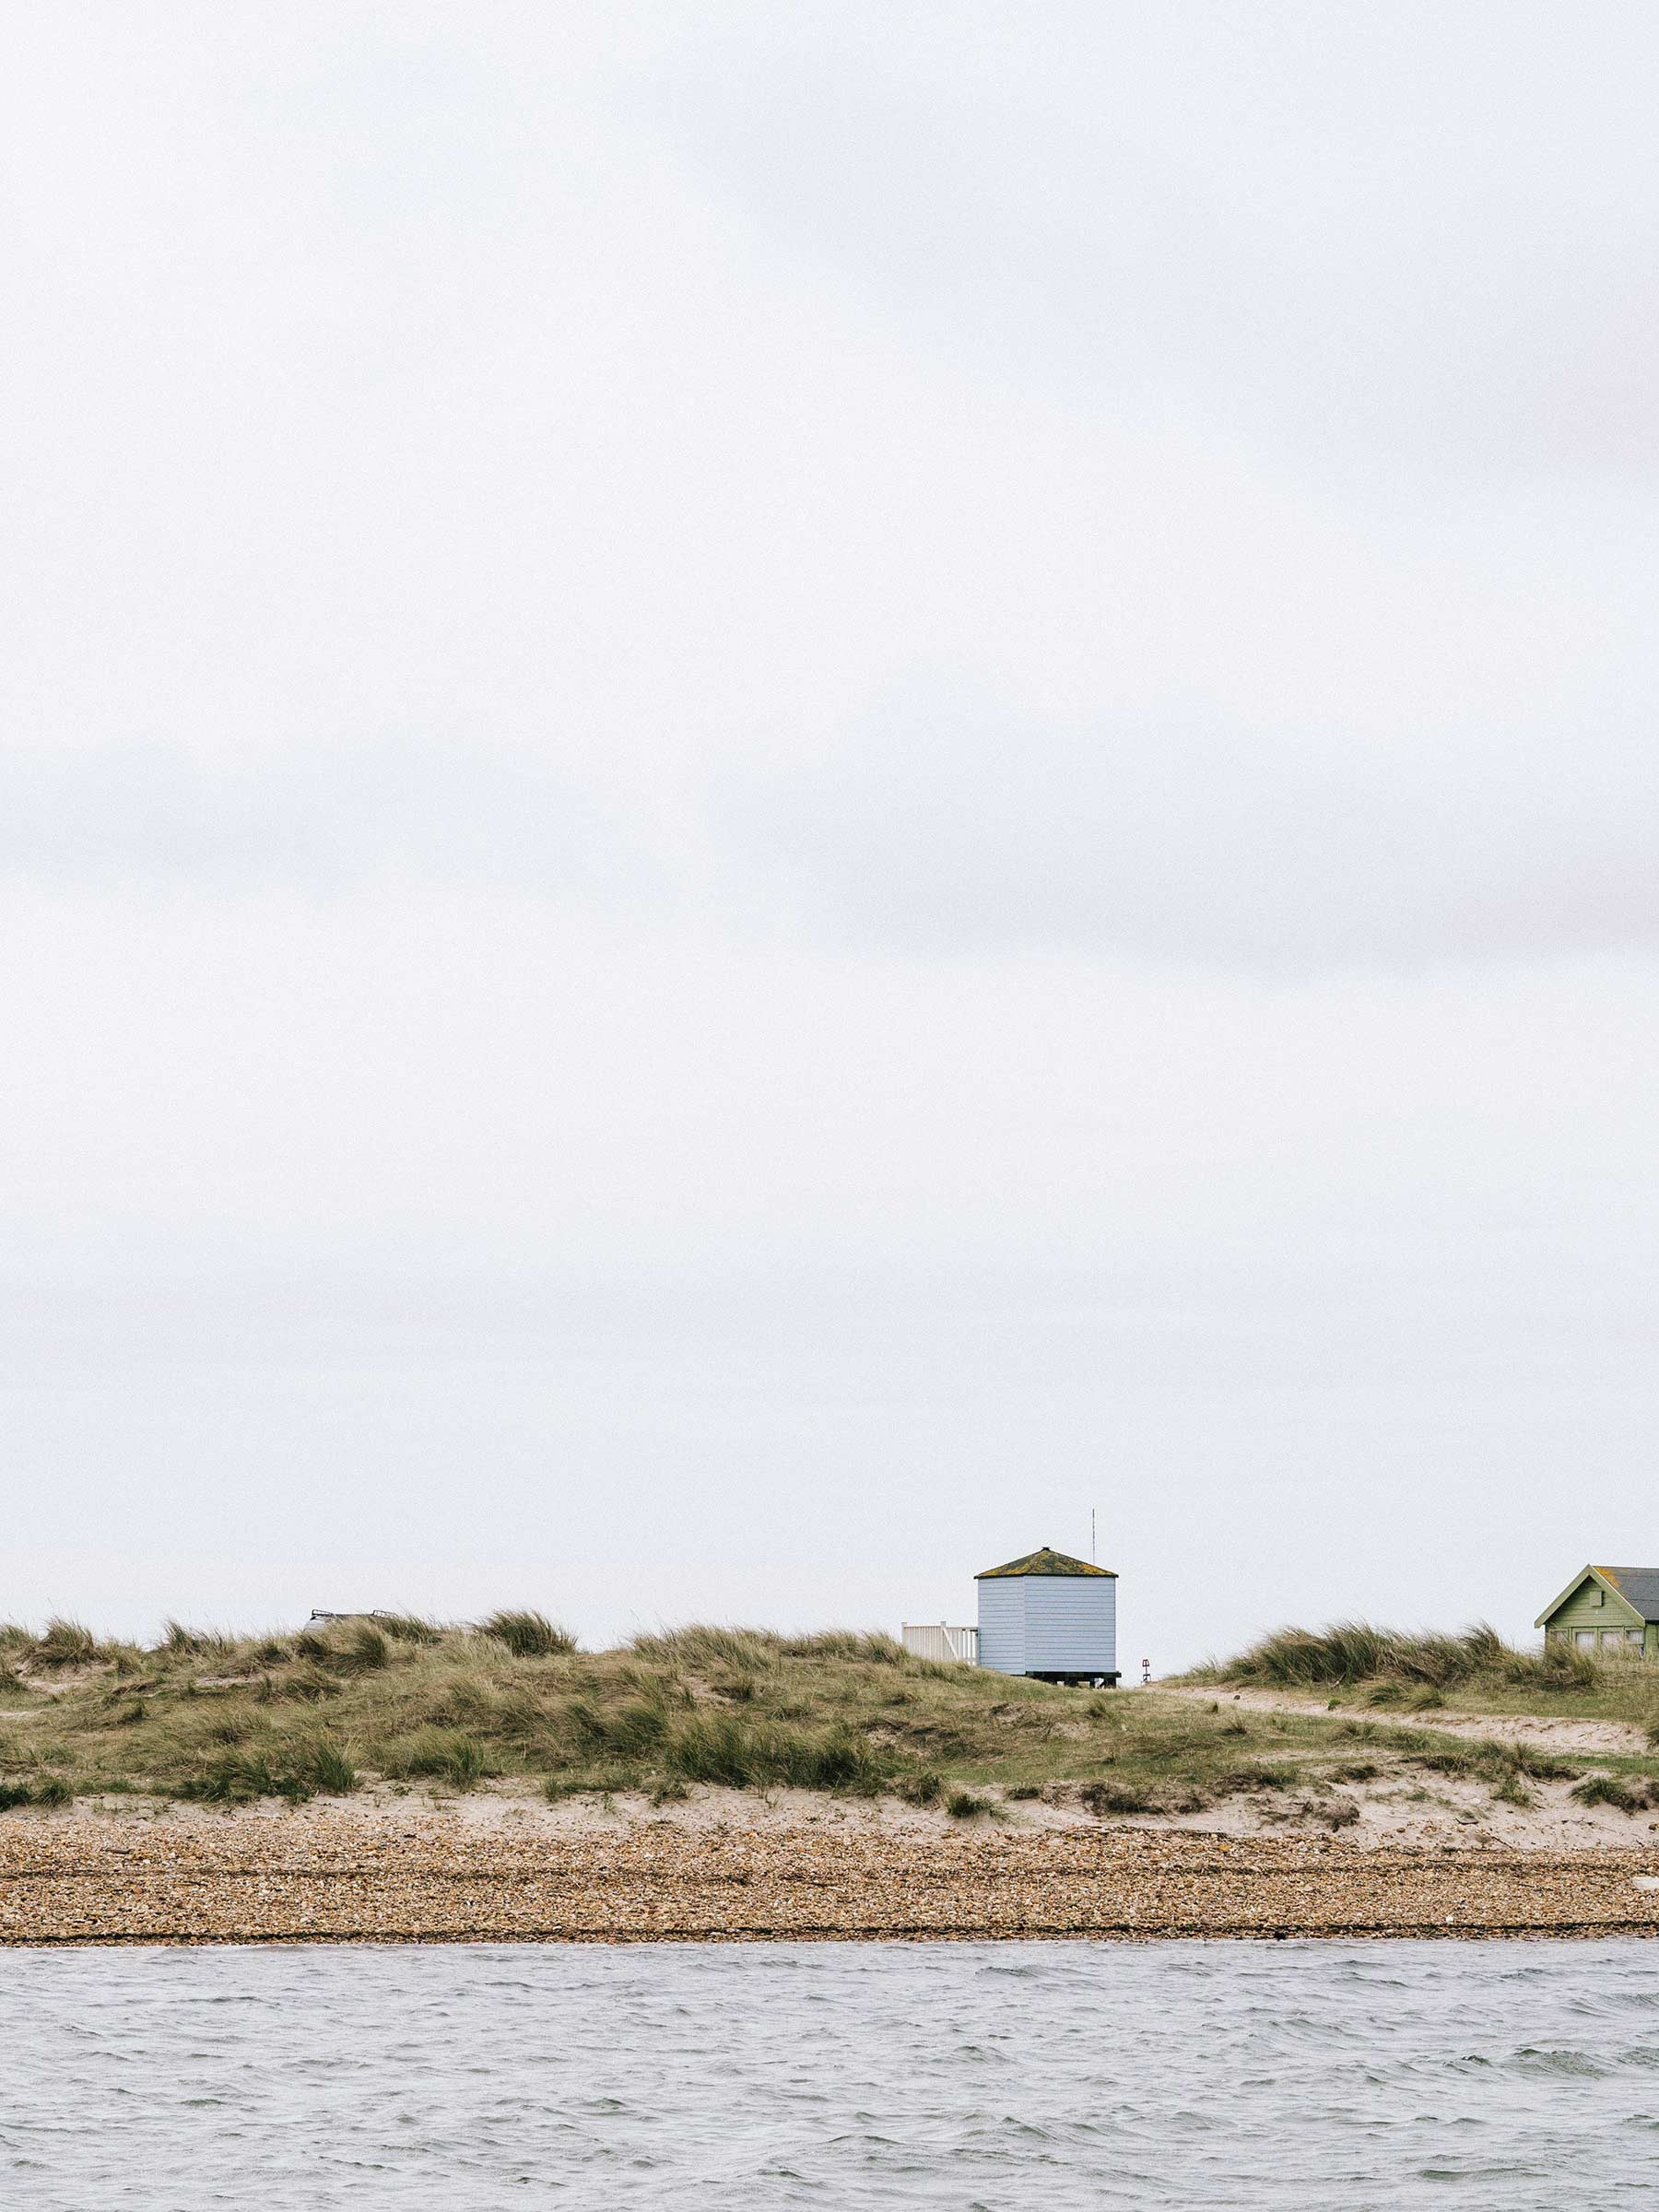 6-beach-hut-in-sand-dunes.jpg